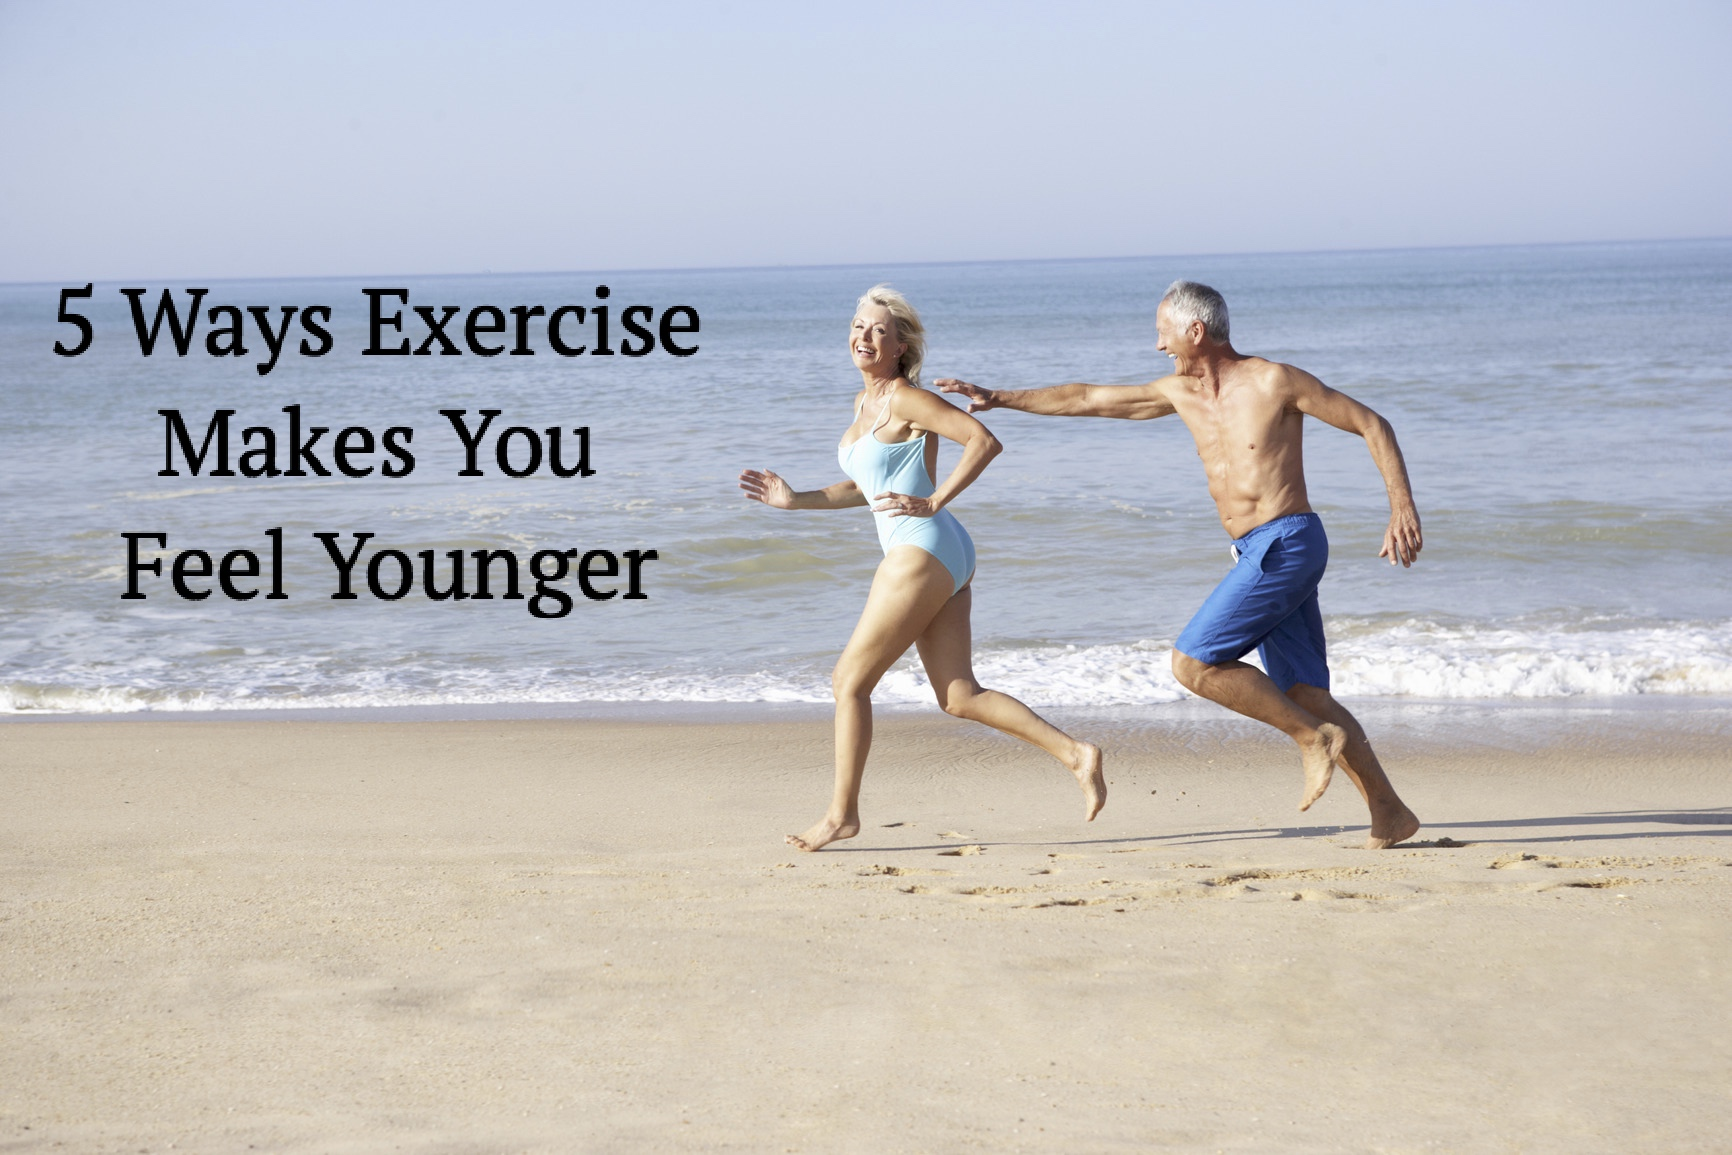 Feel Younger